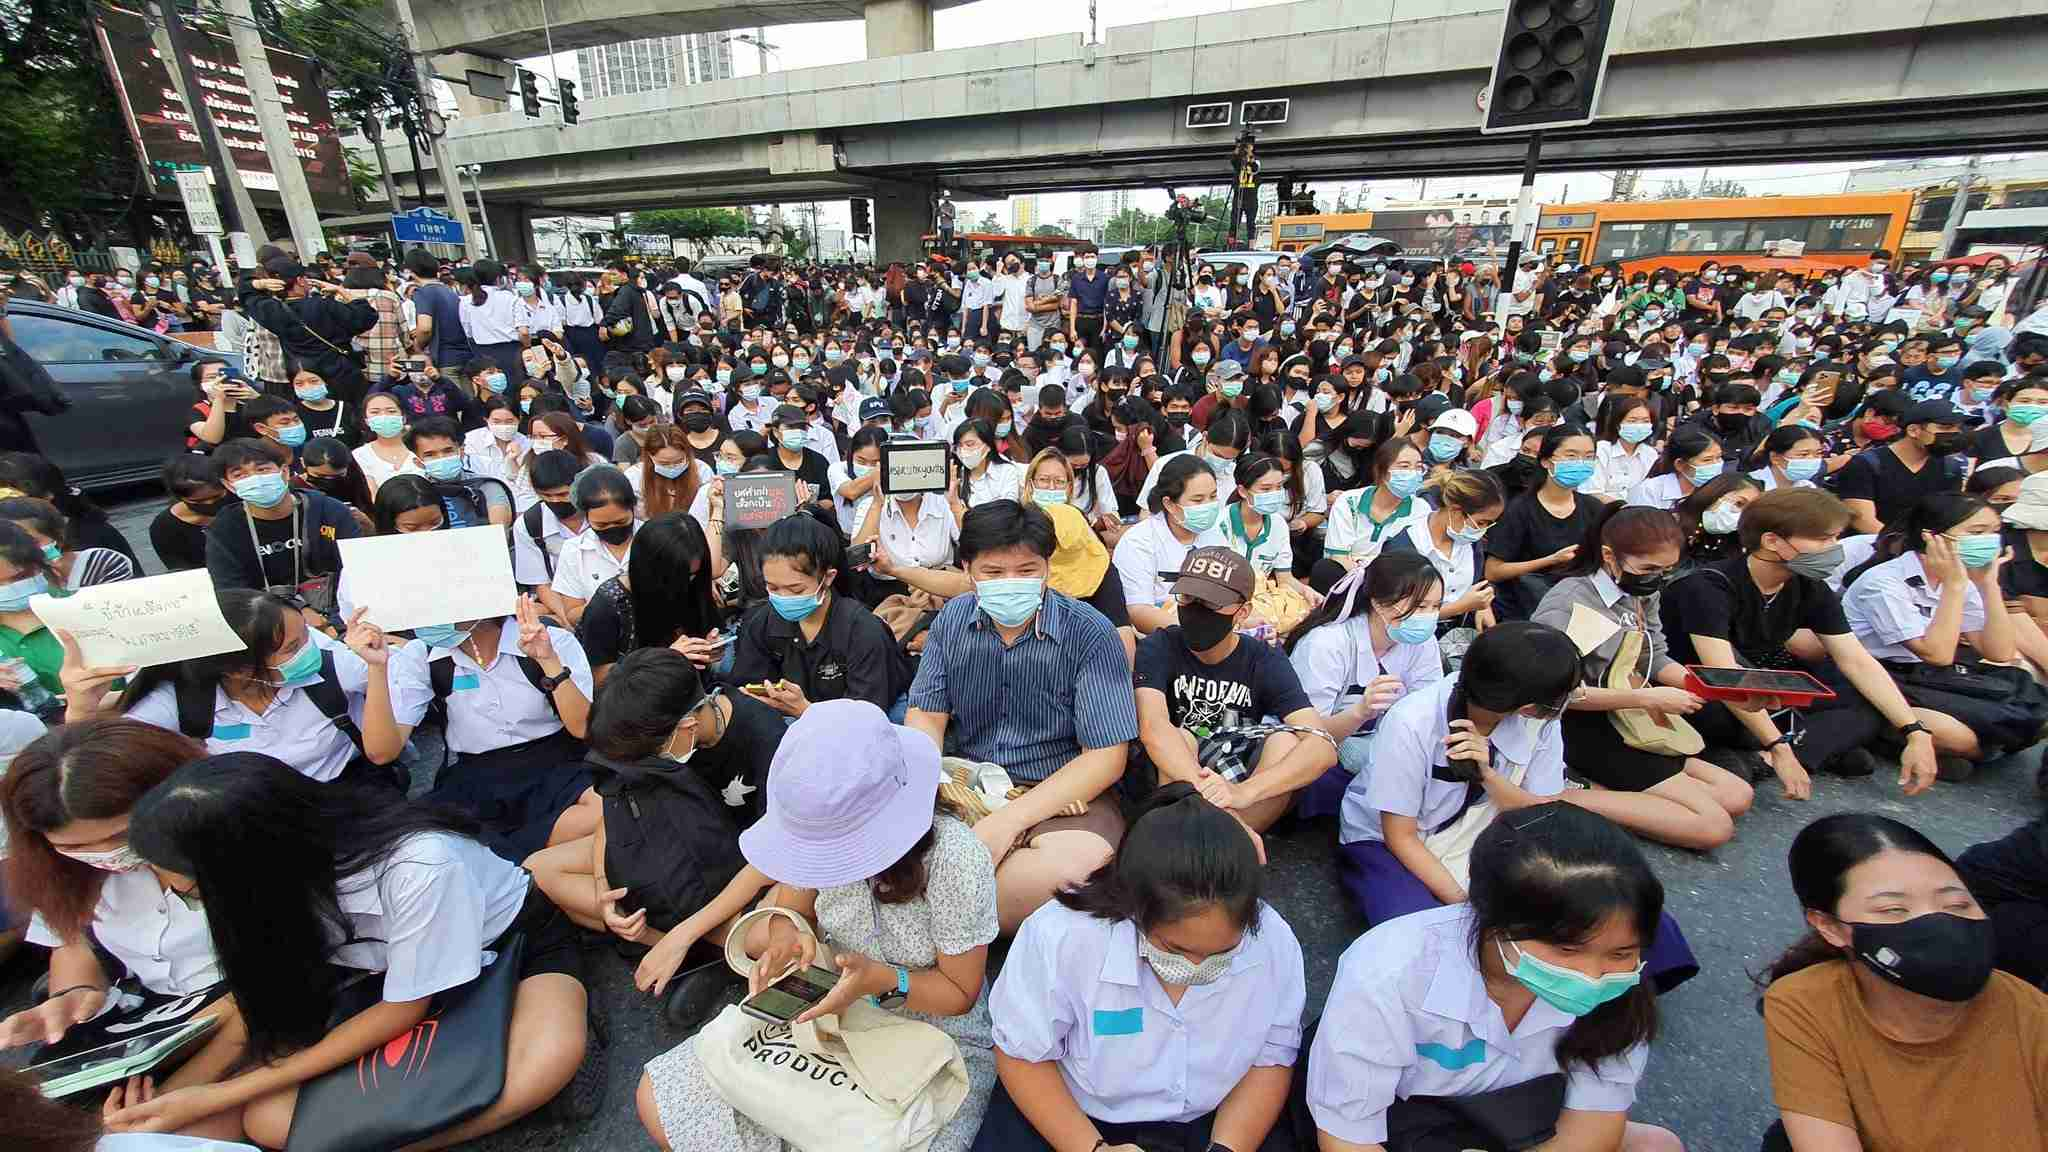 """Students listen with rapt attention as Sirawith """"Ja Niew"""" Serithiwat speaks at Bangkok's Kasertsart intersection Monday."""